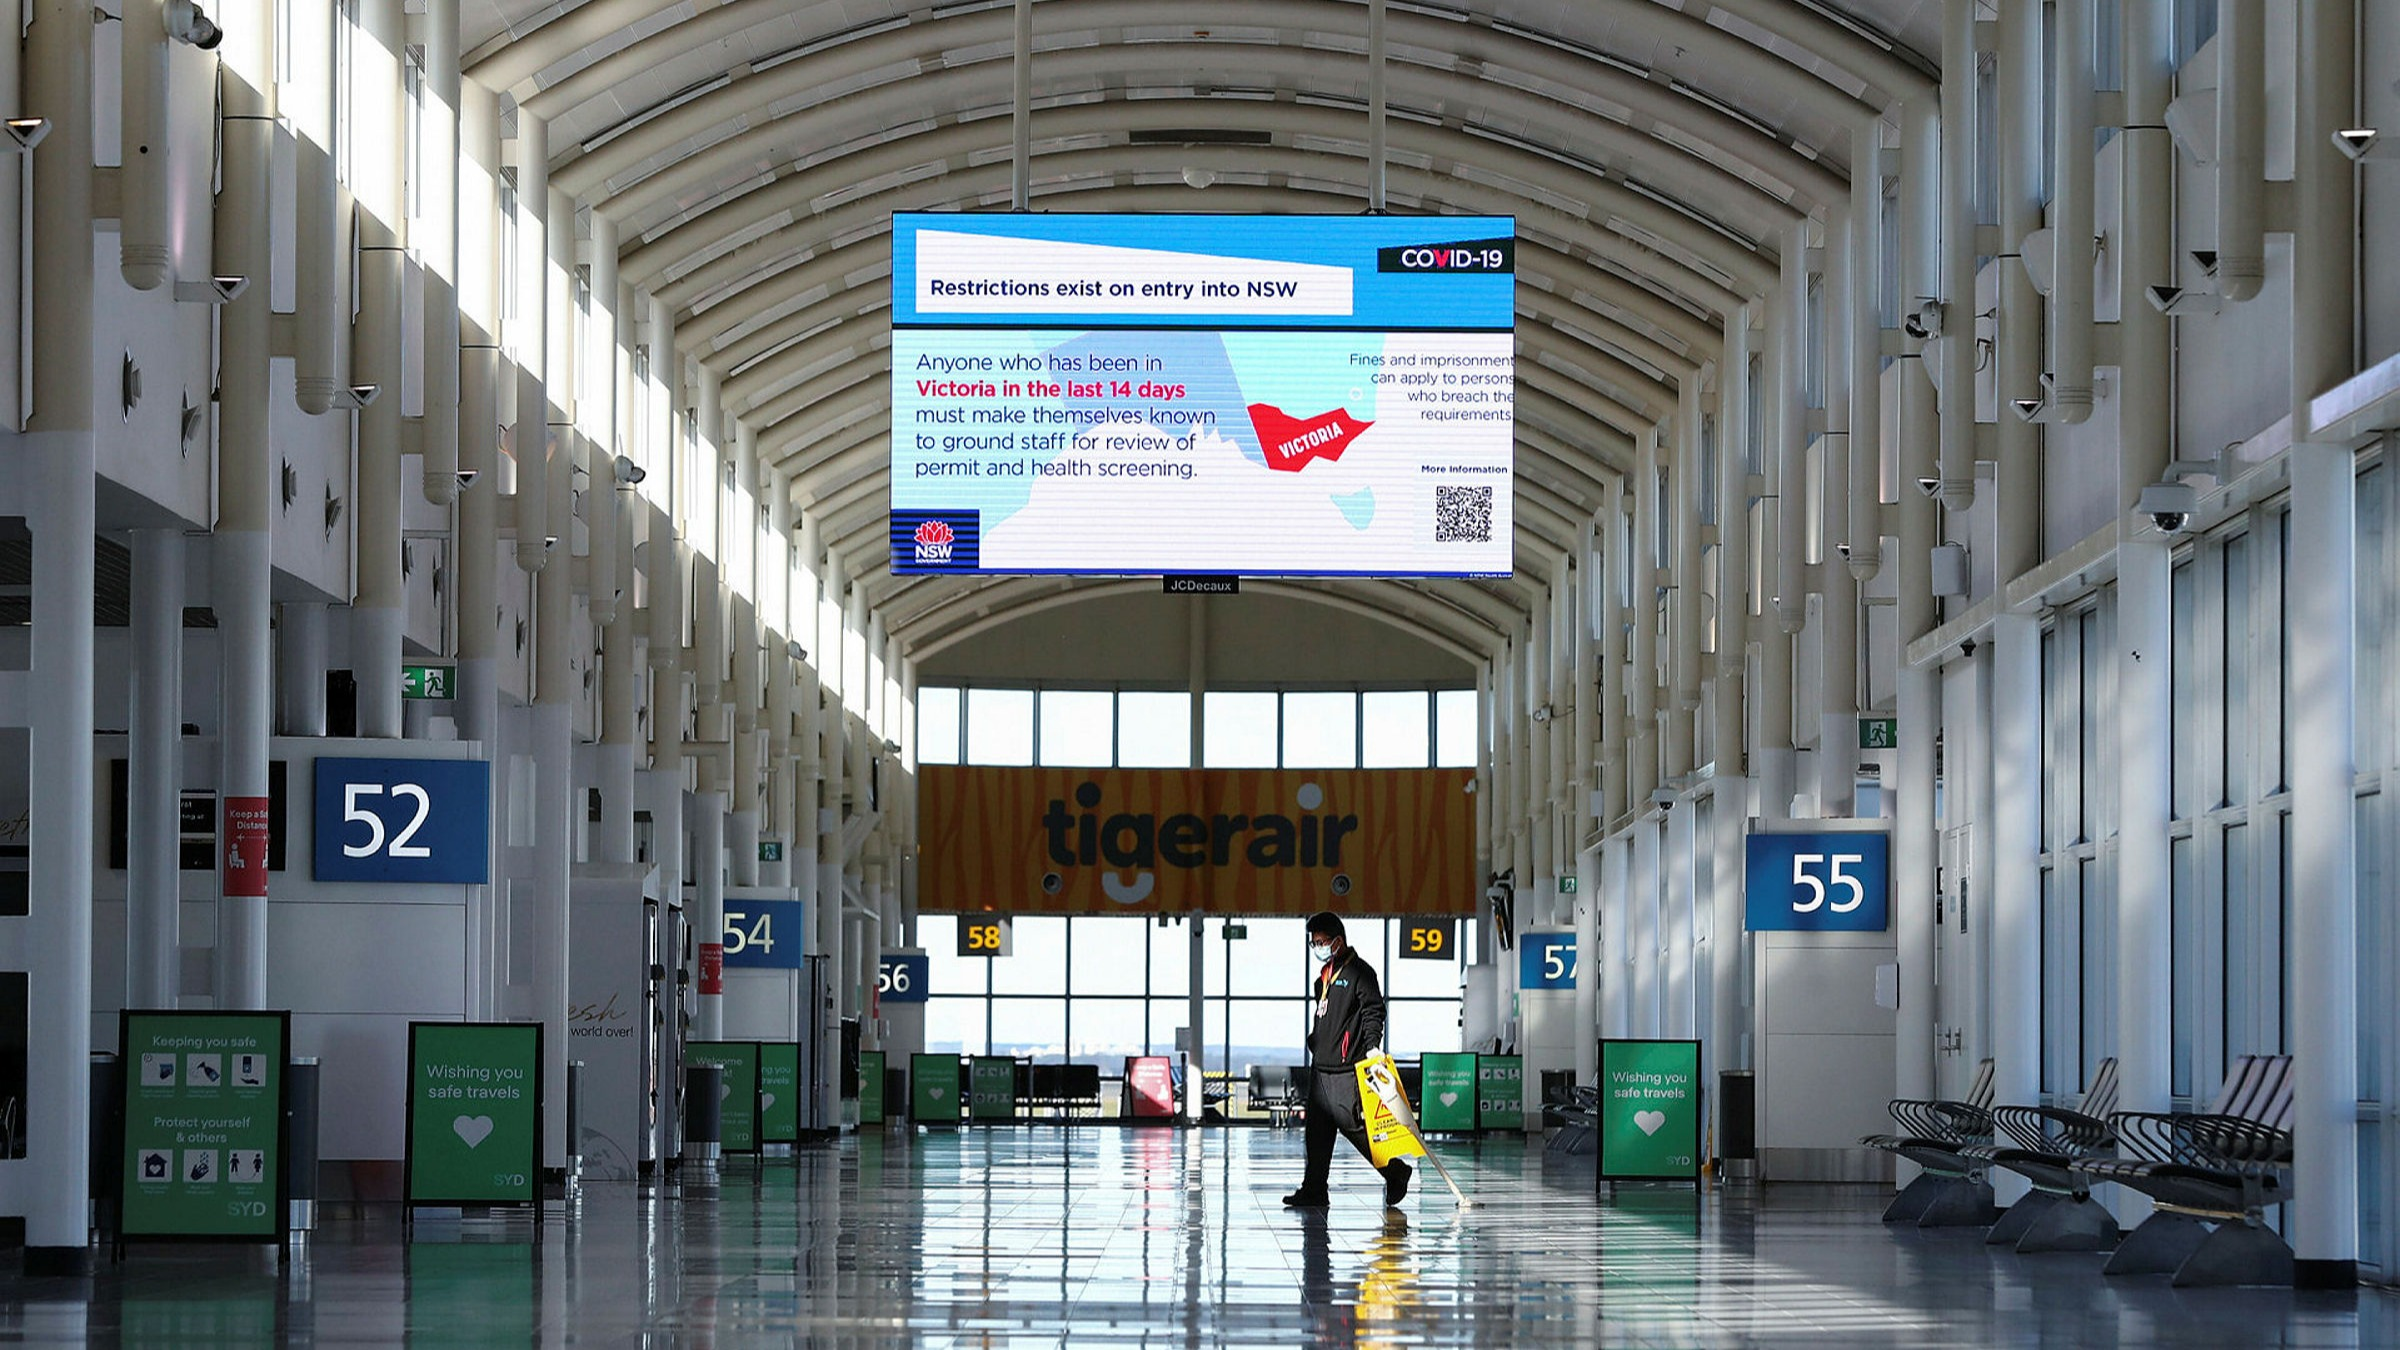 Airport terminals may soon start resembling transport hubs once again with the possibly of travel as early as November 5th